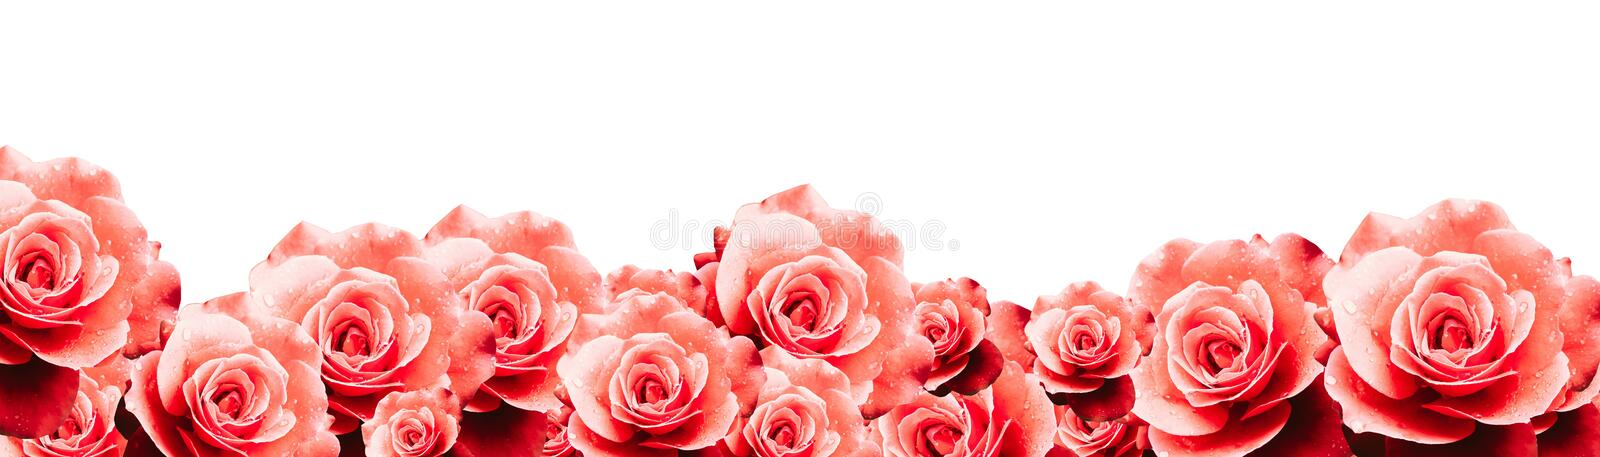 Red roses floral border frame background with wet red pink white roses flowers closeup pattern border panorama. royalty free stock photo